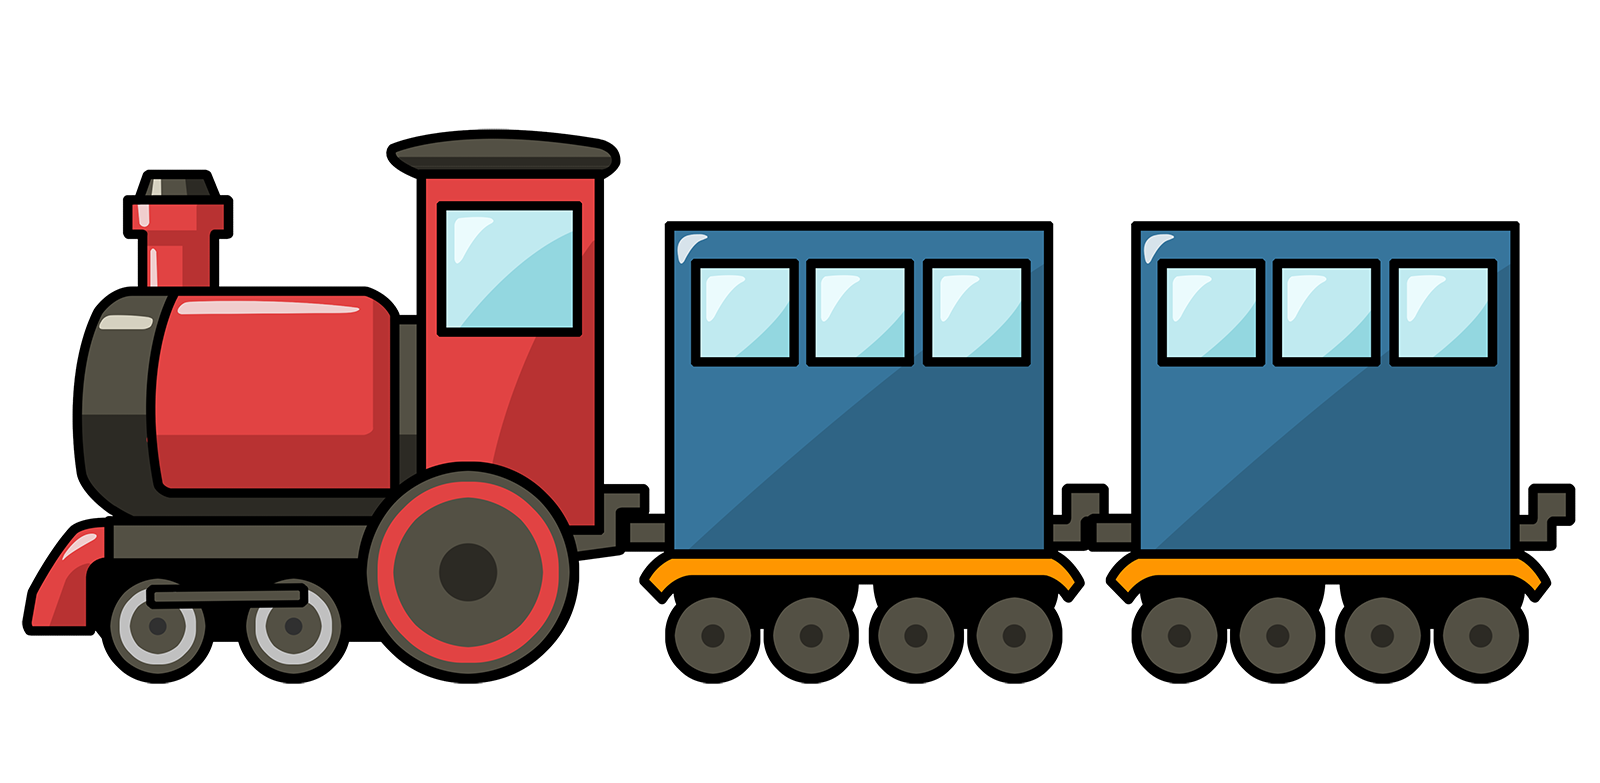 Car with luggage clipart png royalty free Cartoon Train | Free Cute Cartoon Train Clip Art | Cartoon Trains ... png royalty free